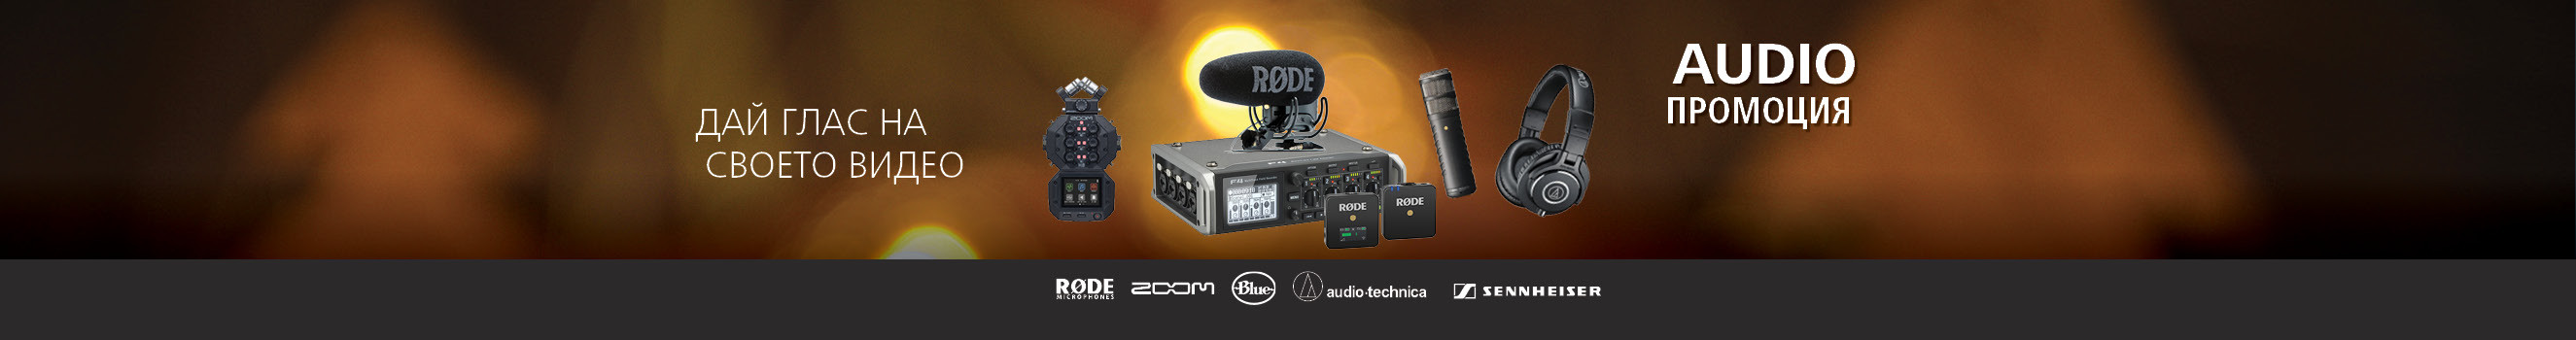 Promotion for audio products for professionals and amateurs in PhotoSynthesis stores